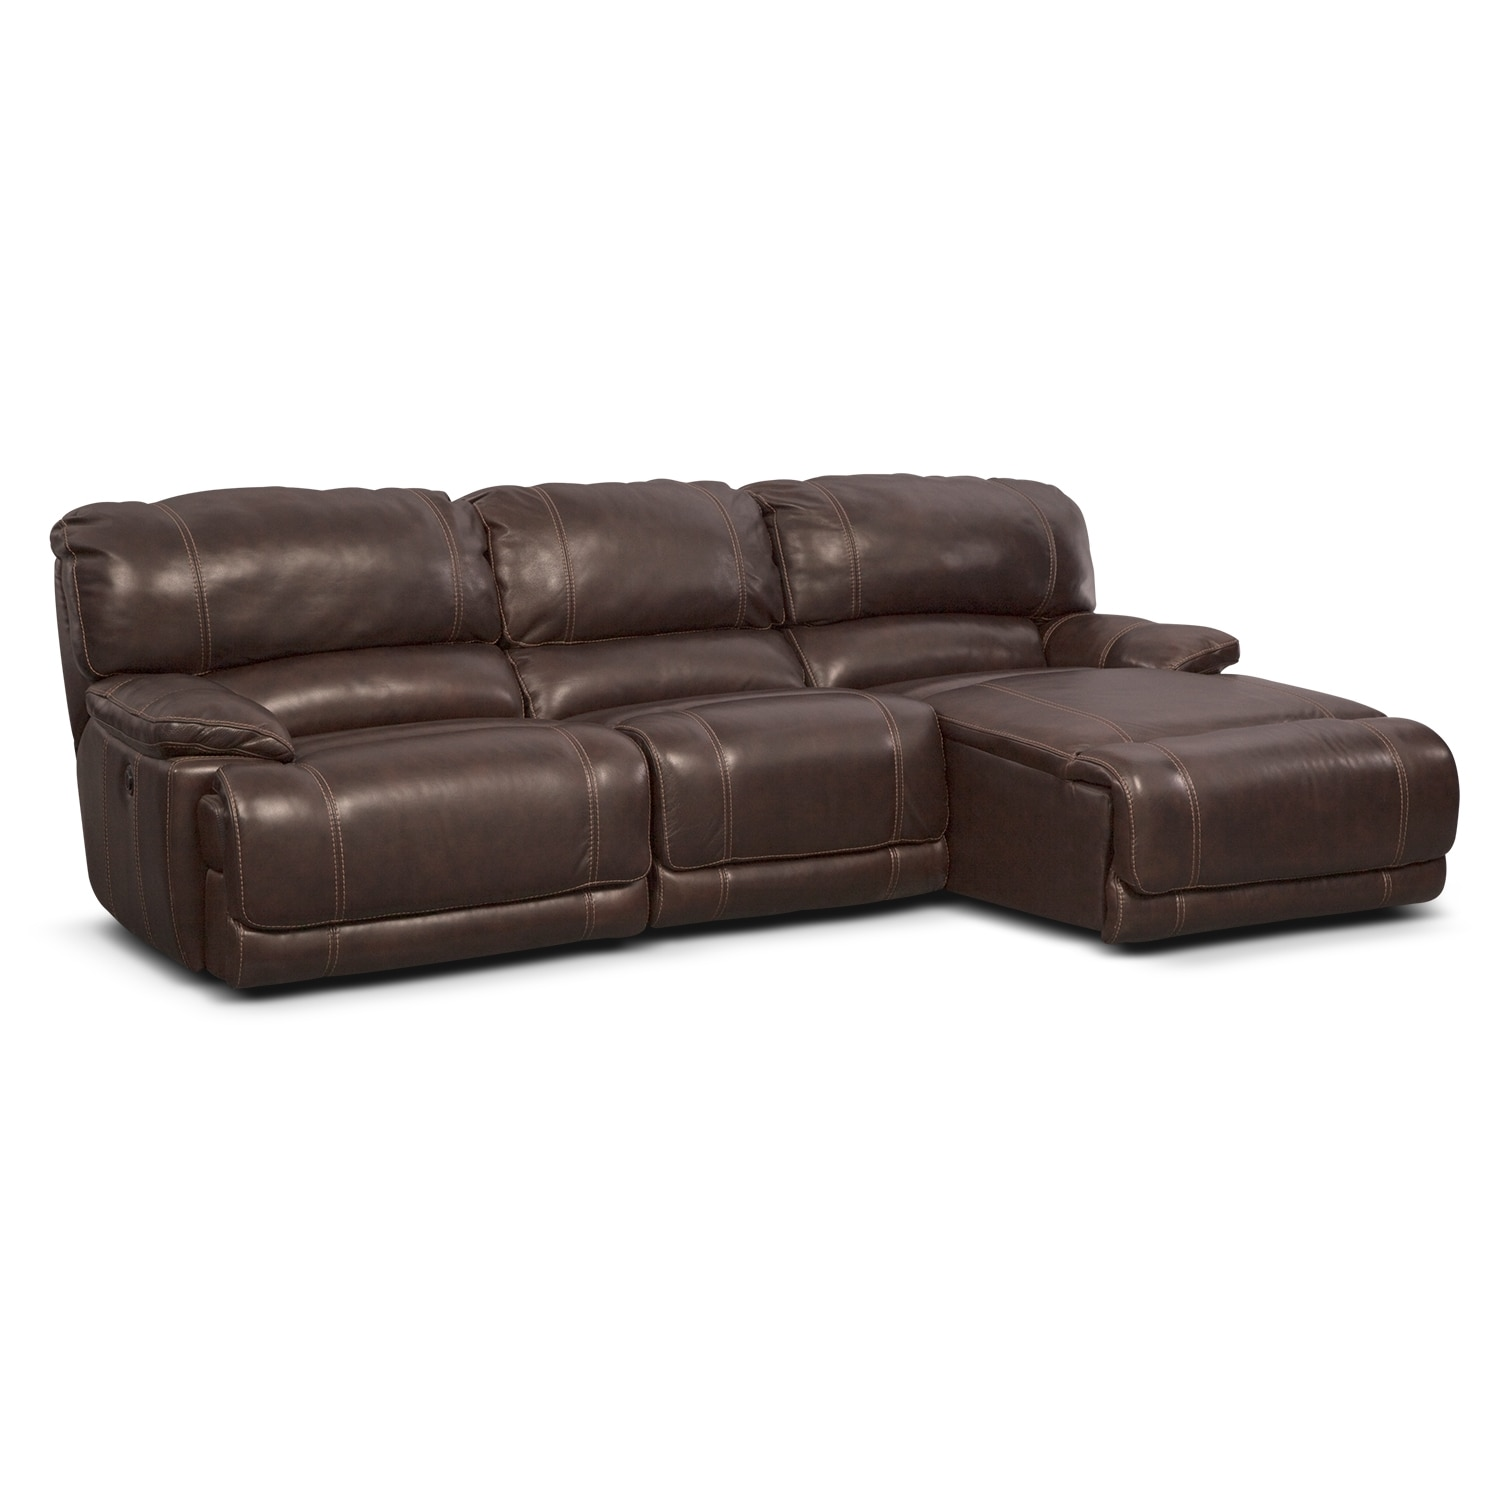 St malo 3 piece power reclining sectional with right for Brown chaise sofa